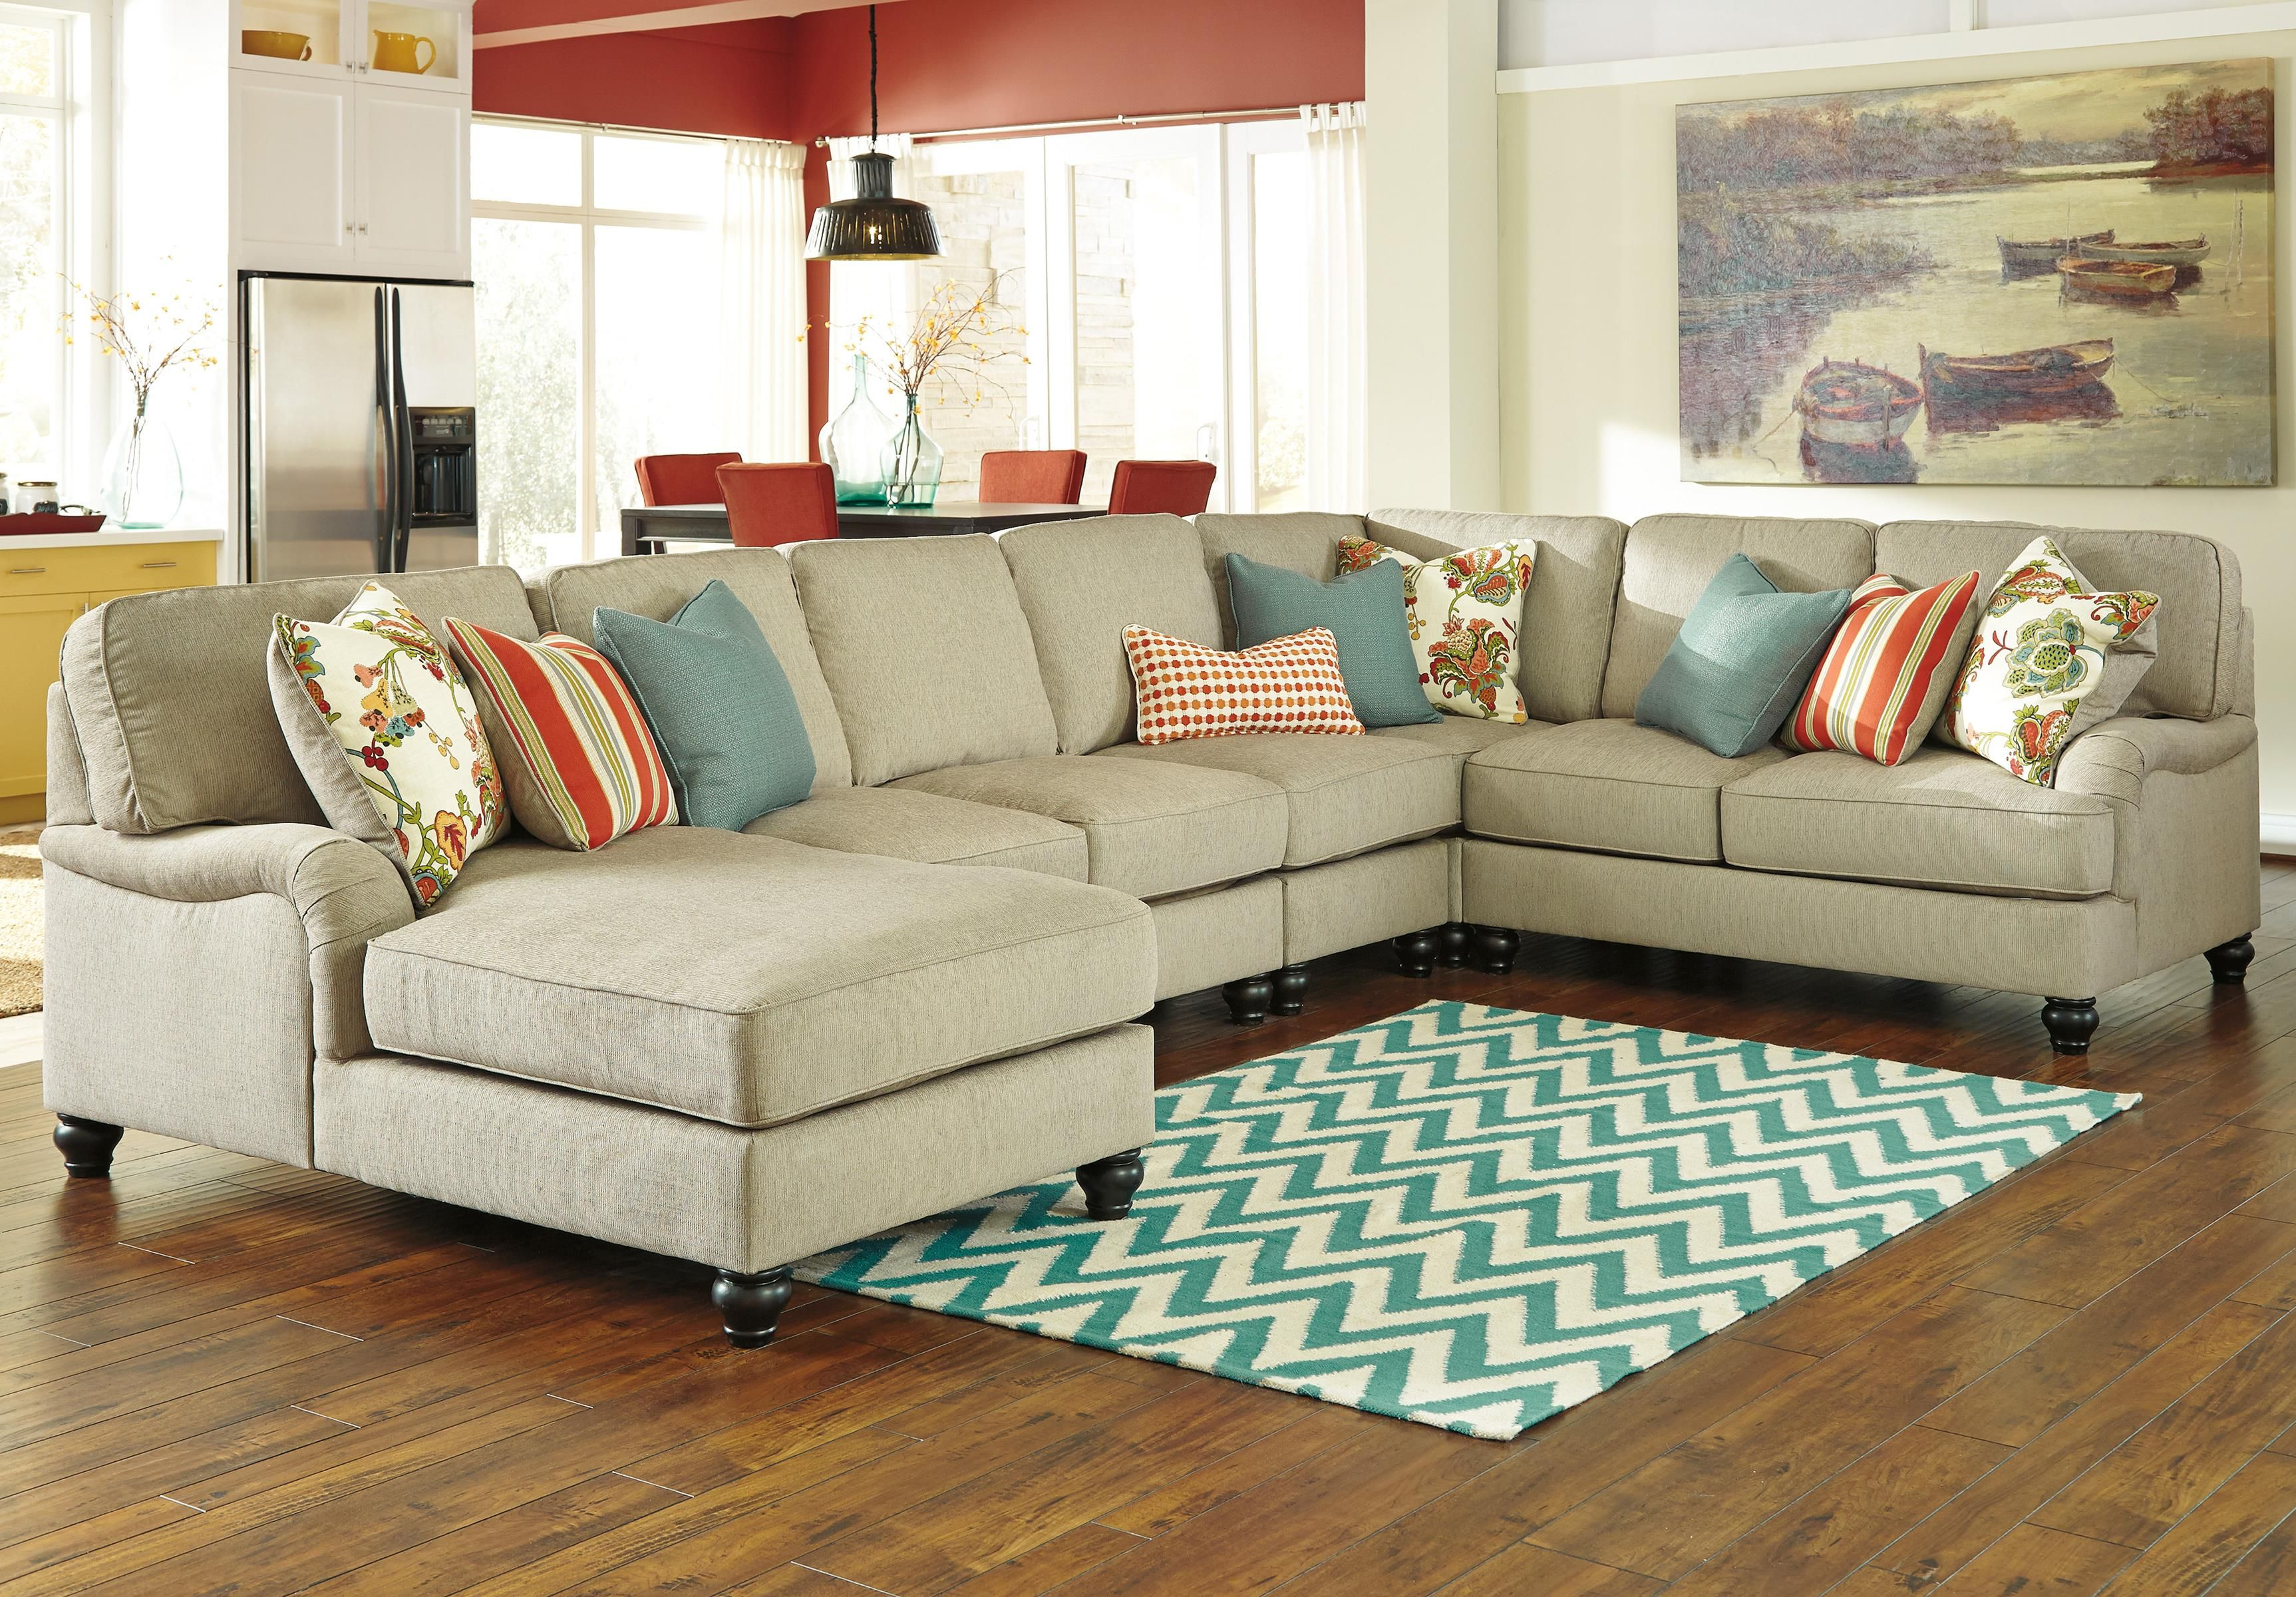 Kerridon 5 piece sectional with left chaise by benchcraft for Bassett sectional sofa with chaise